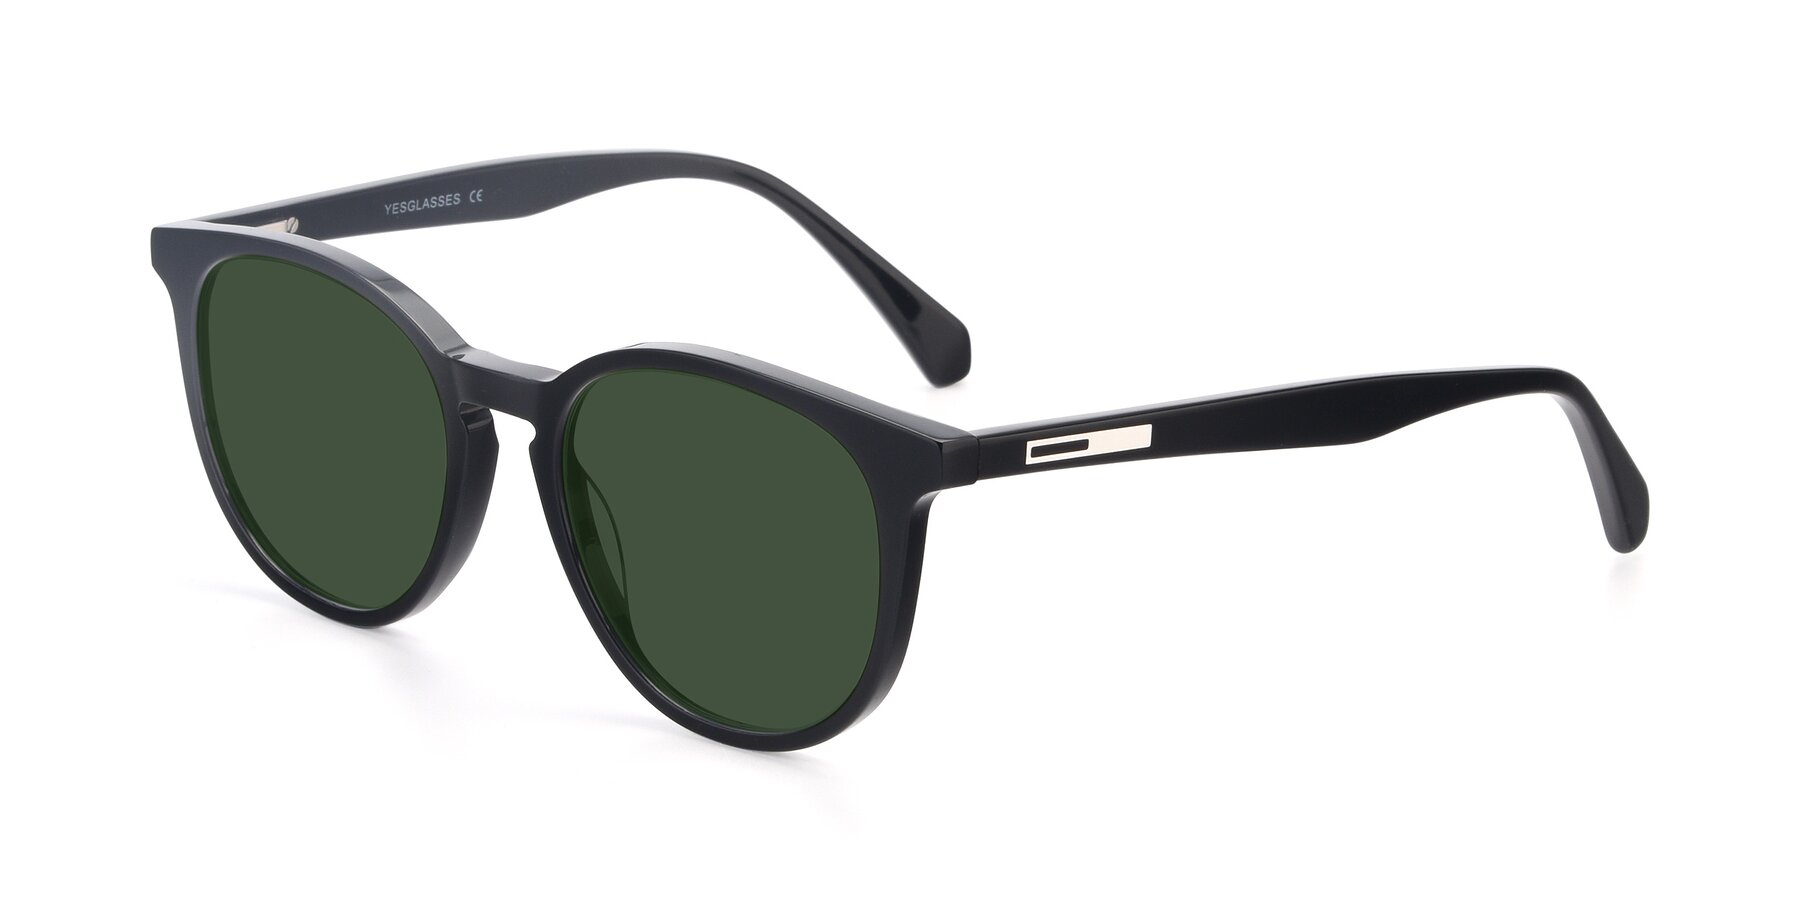 Angle of 17721 in Black with Green Tinted Lenses